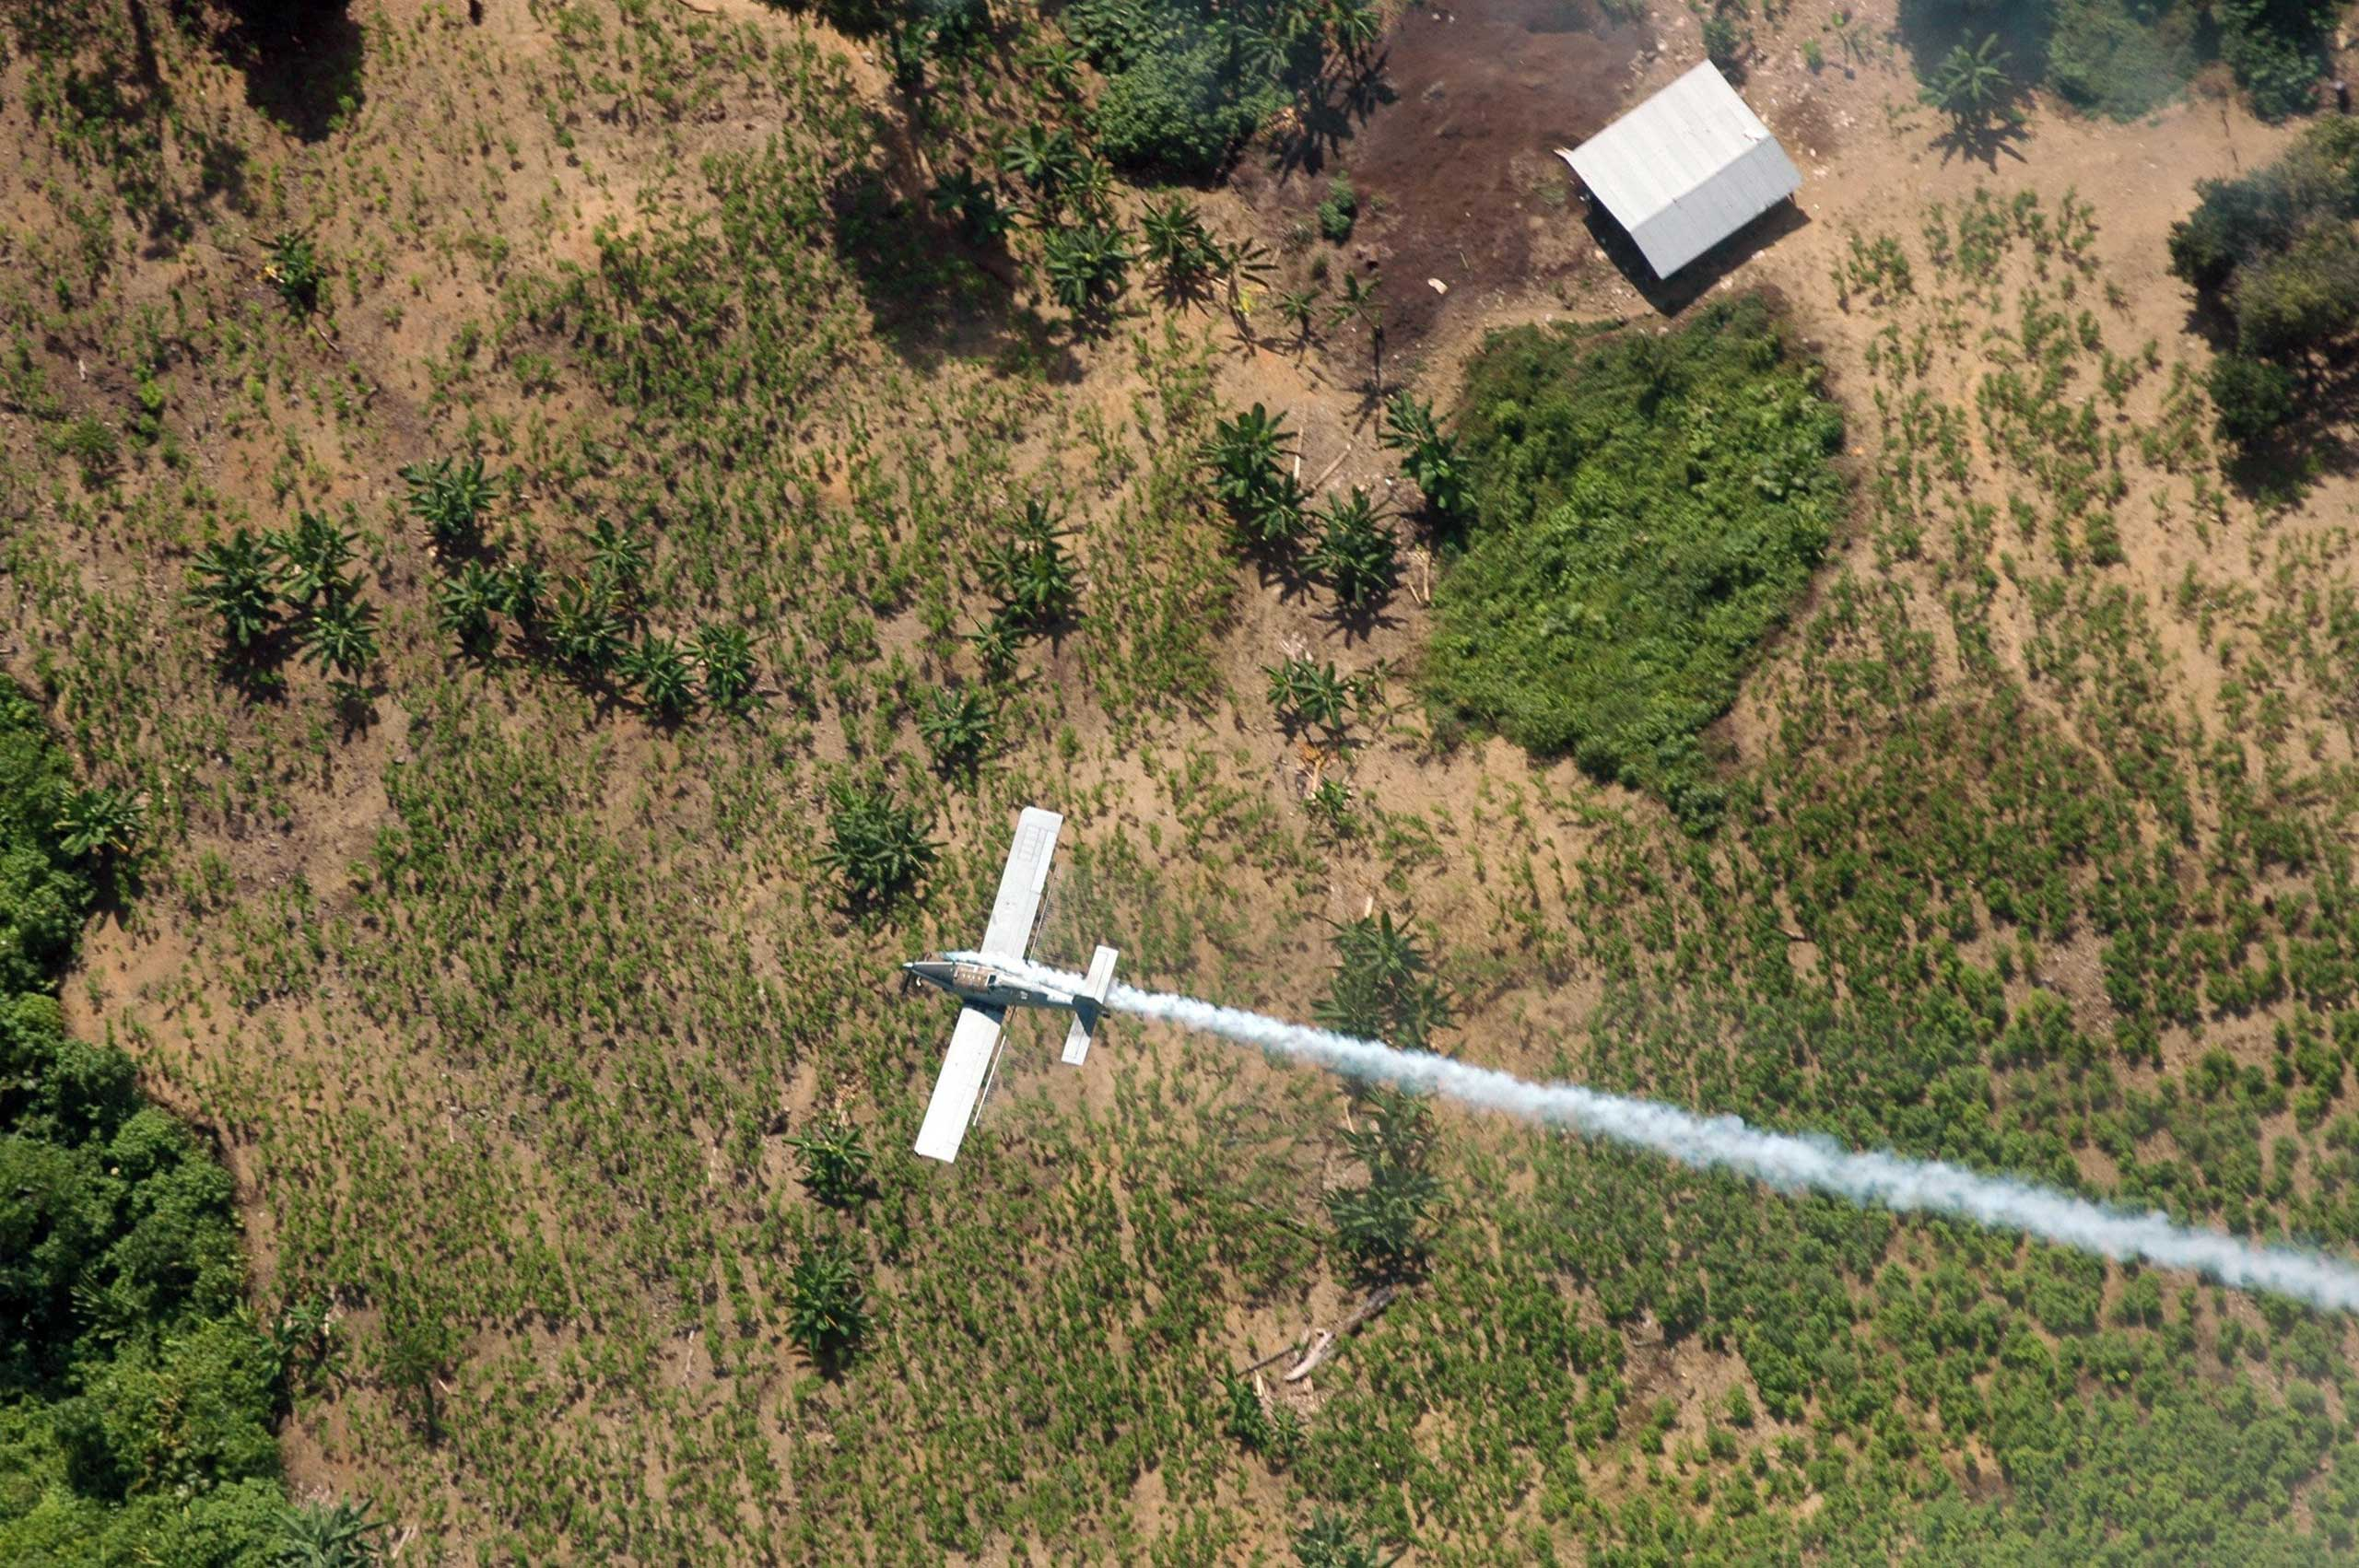 A police plane sprays herbicides over coca fields in El Tarra, in the Catatumbo river area of Colombia on June 4, 2008.